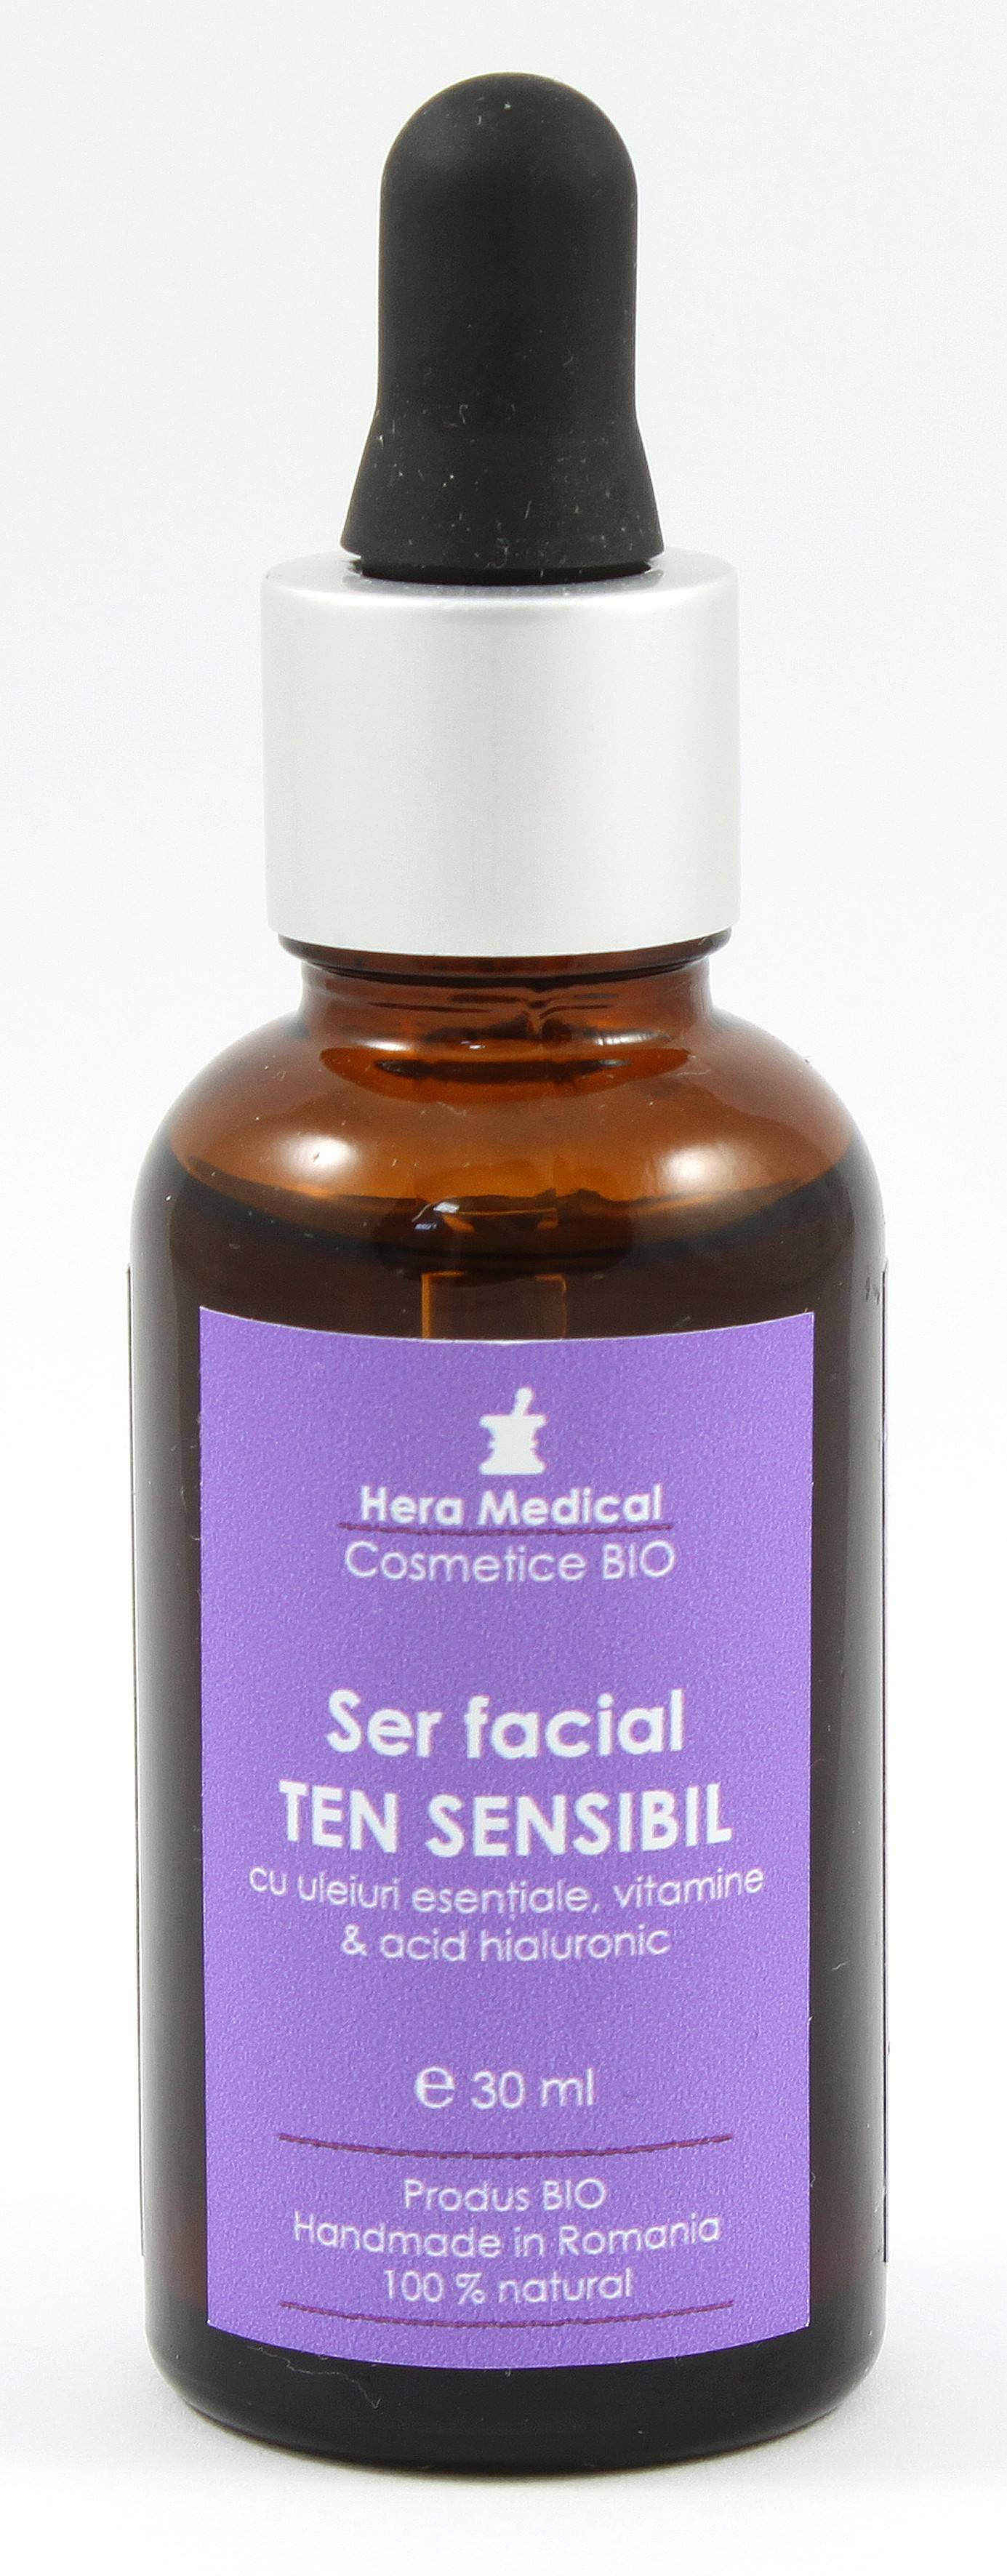 SER FACIAL ANTI-AGING SENSITIVE 30 ML thumbnail